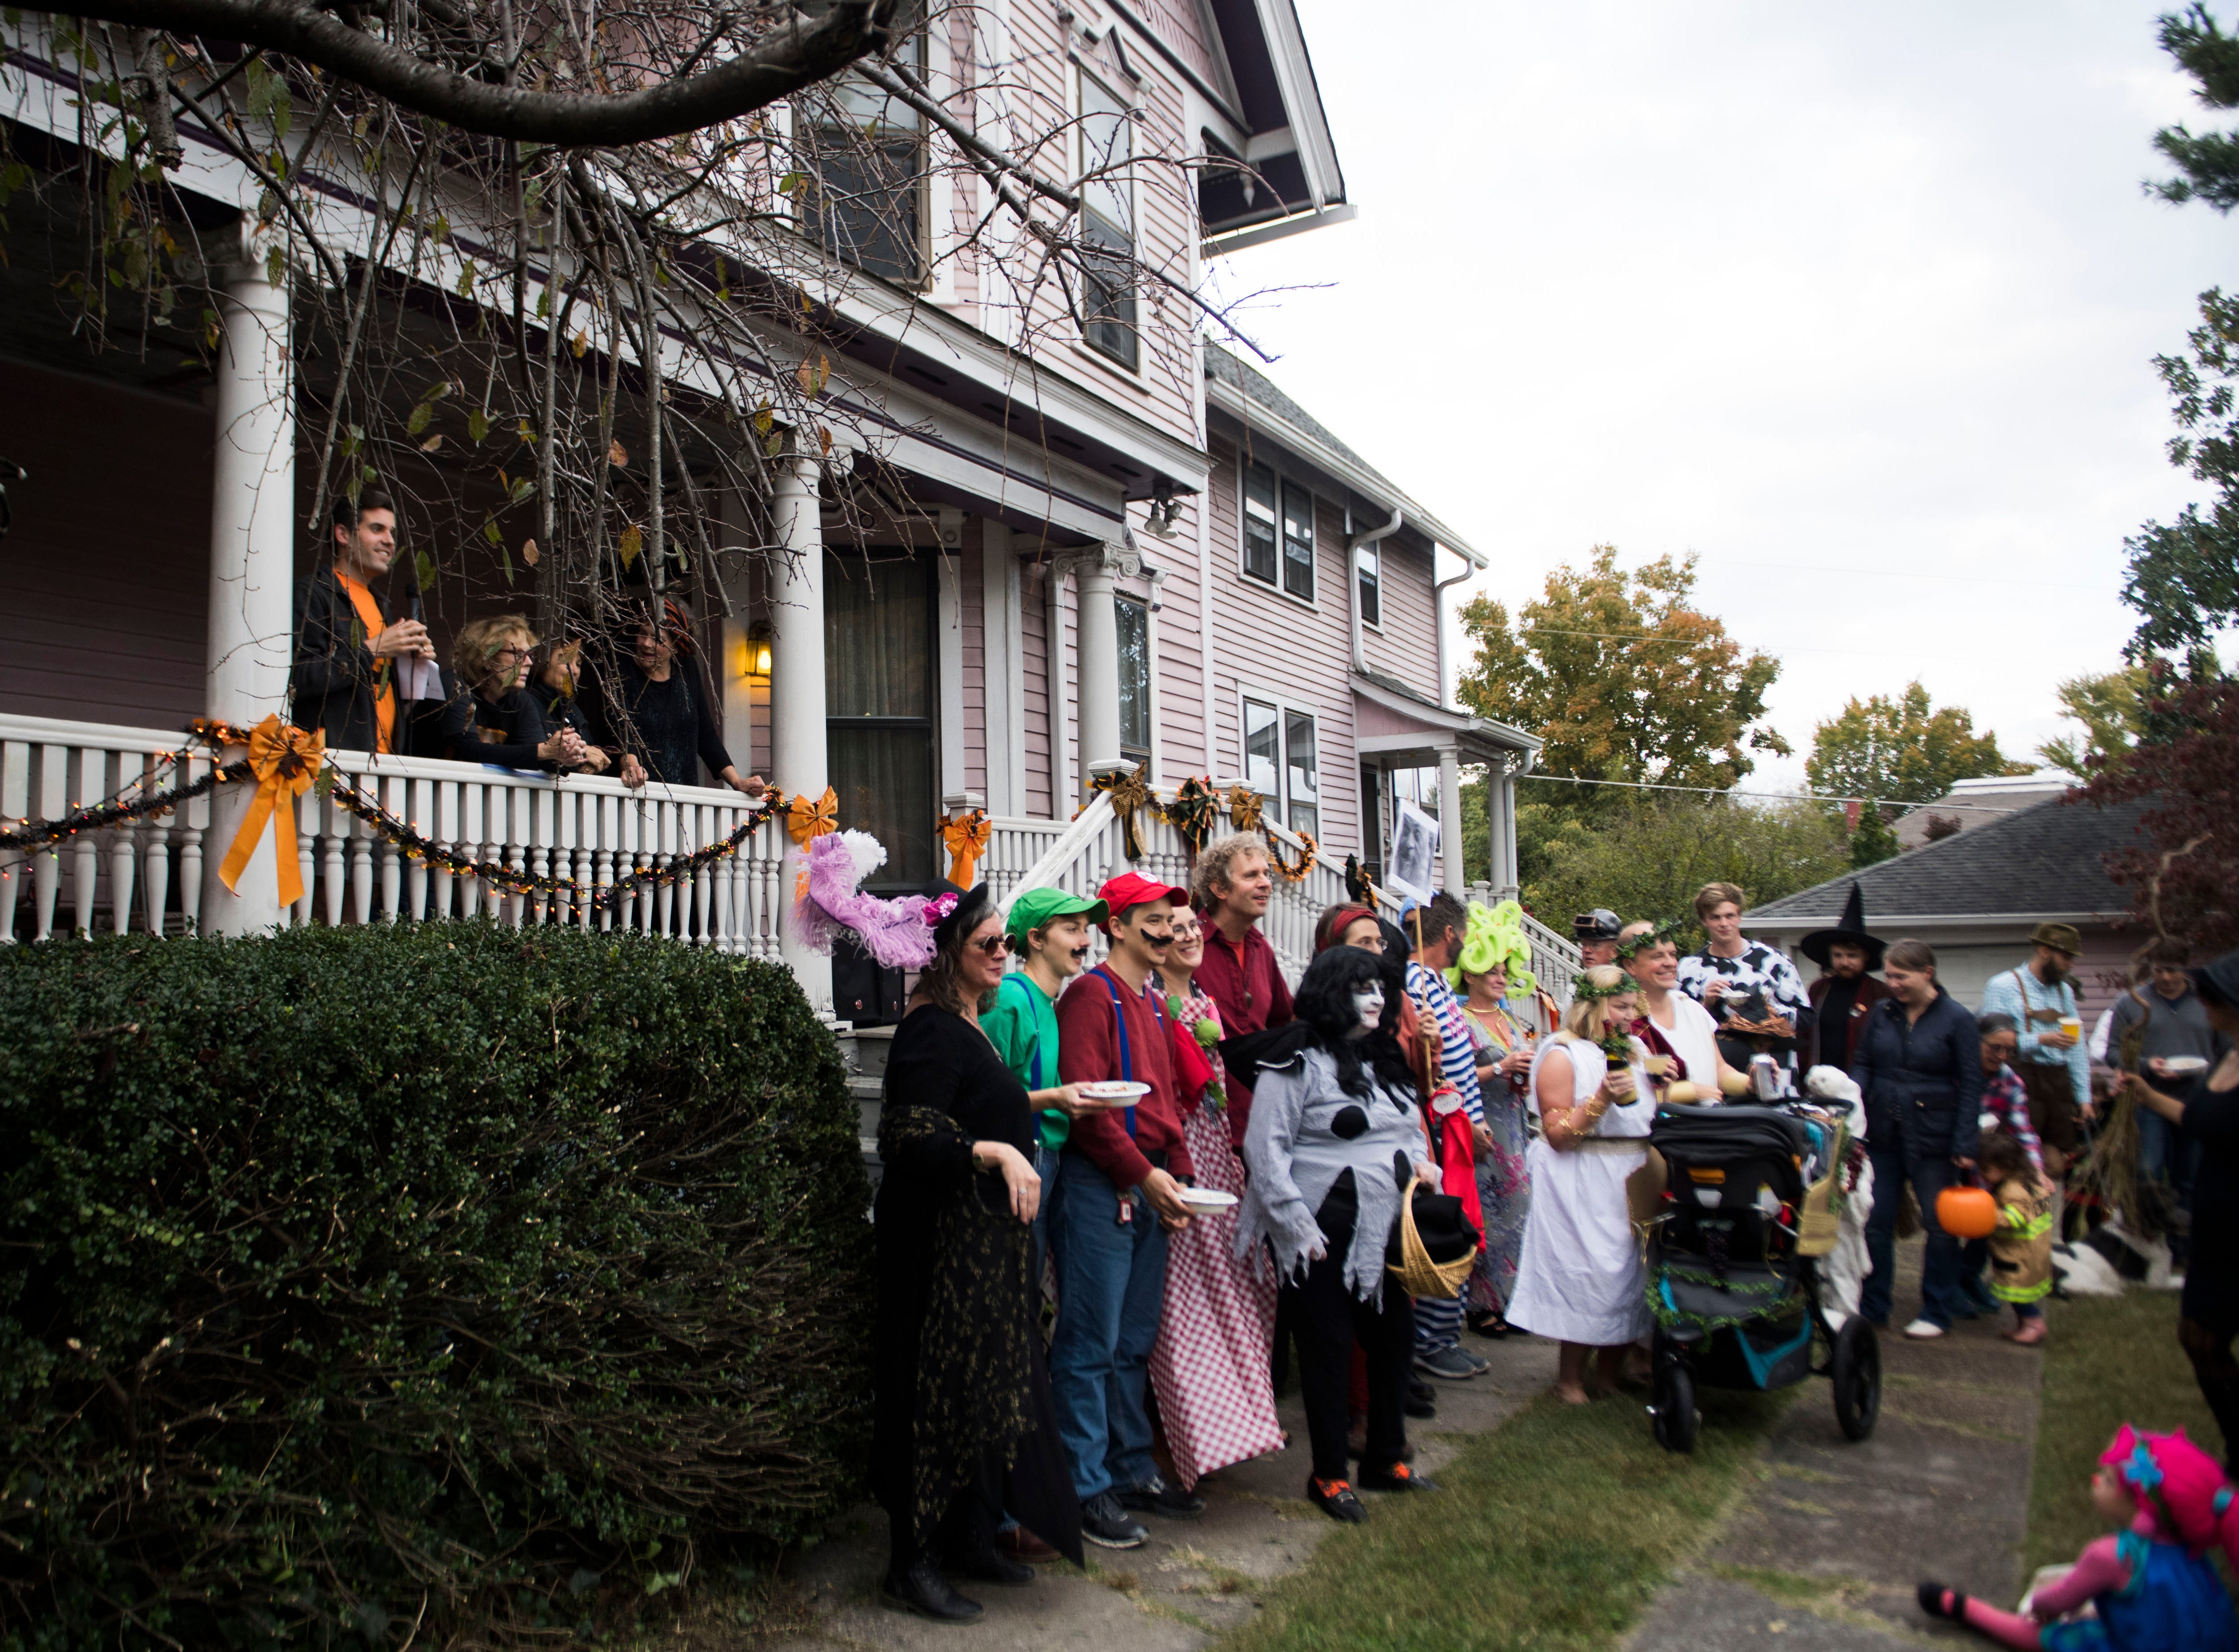 Adult costume contest participants gather for a photo at the Fourth and Gill neighborhood's Halloween party in Knoxville, Wed. Oct. 31, 2018.